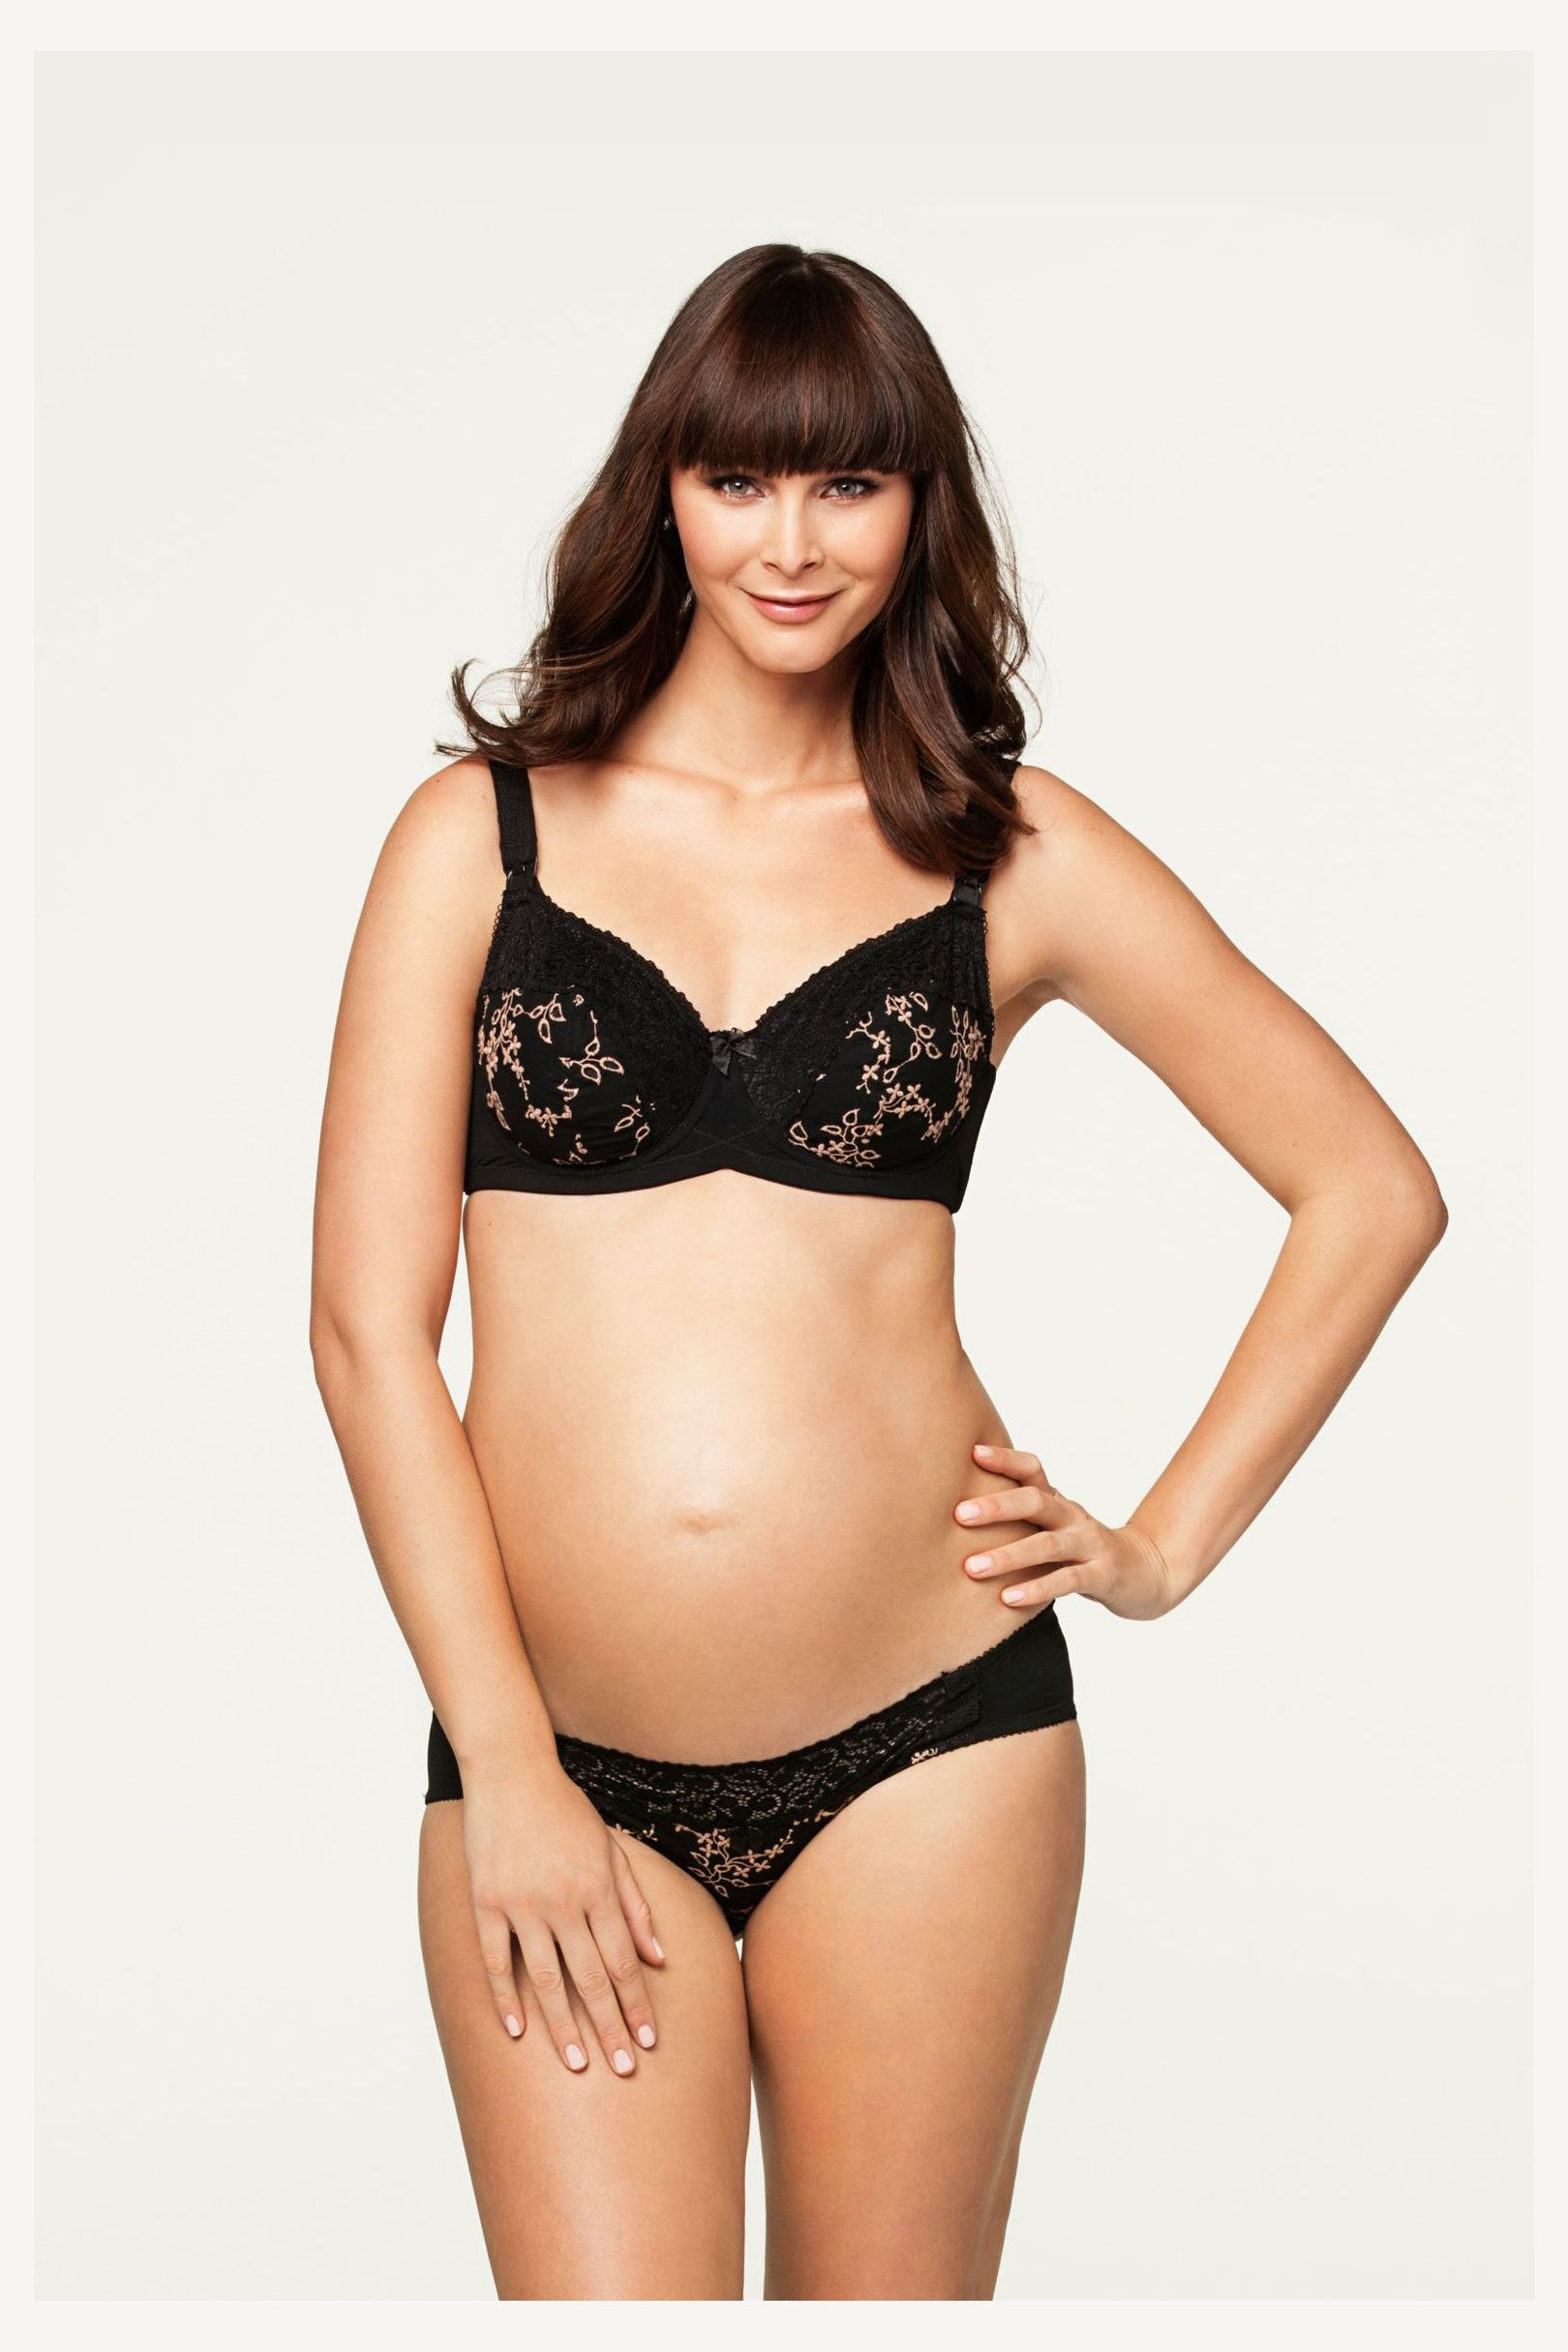 Nursing Bra Clearance Sale | Cake Maternity